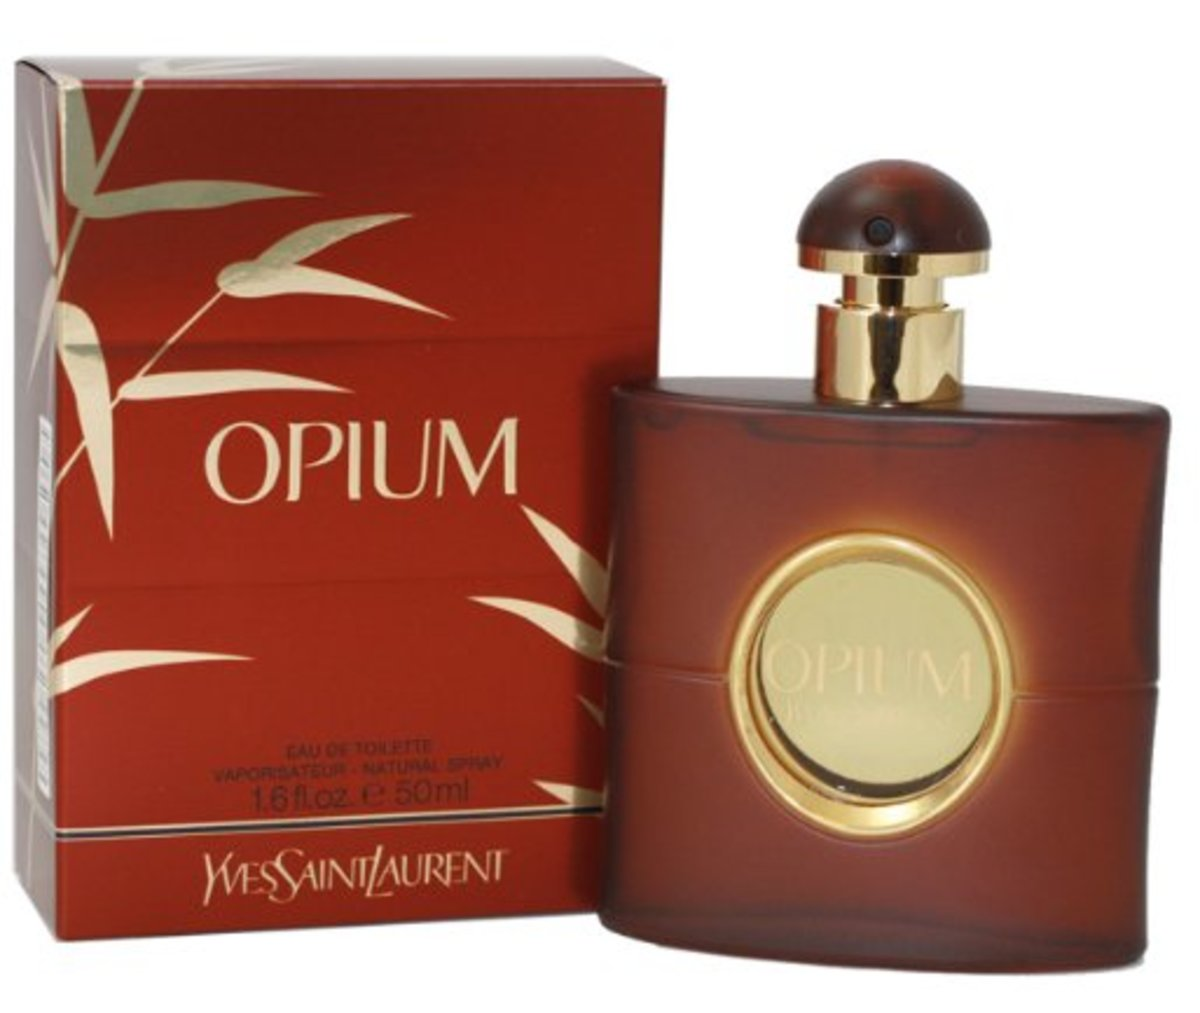 Opium for Women Eau de Toilette Spray 50ml